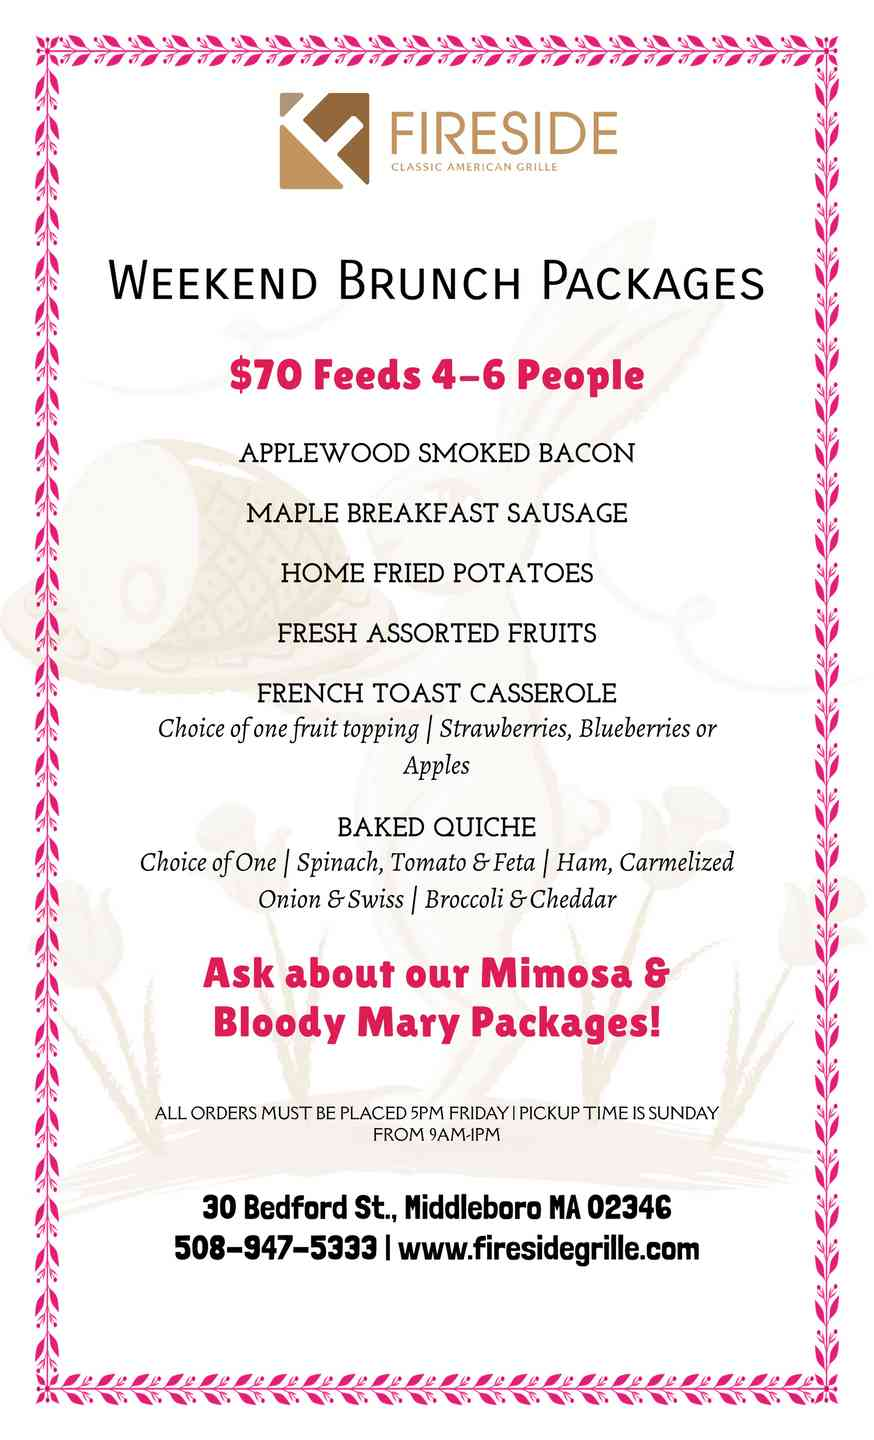 Brunch Packages To-Go